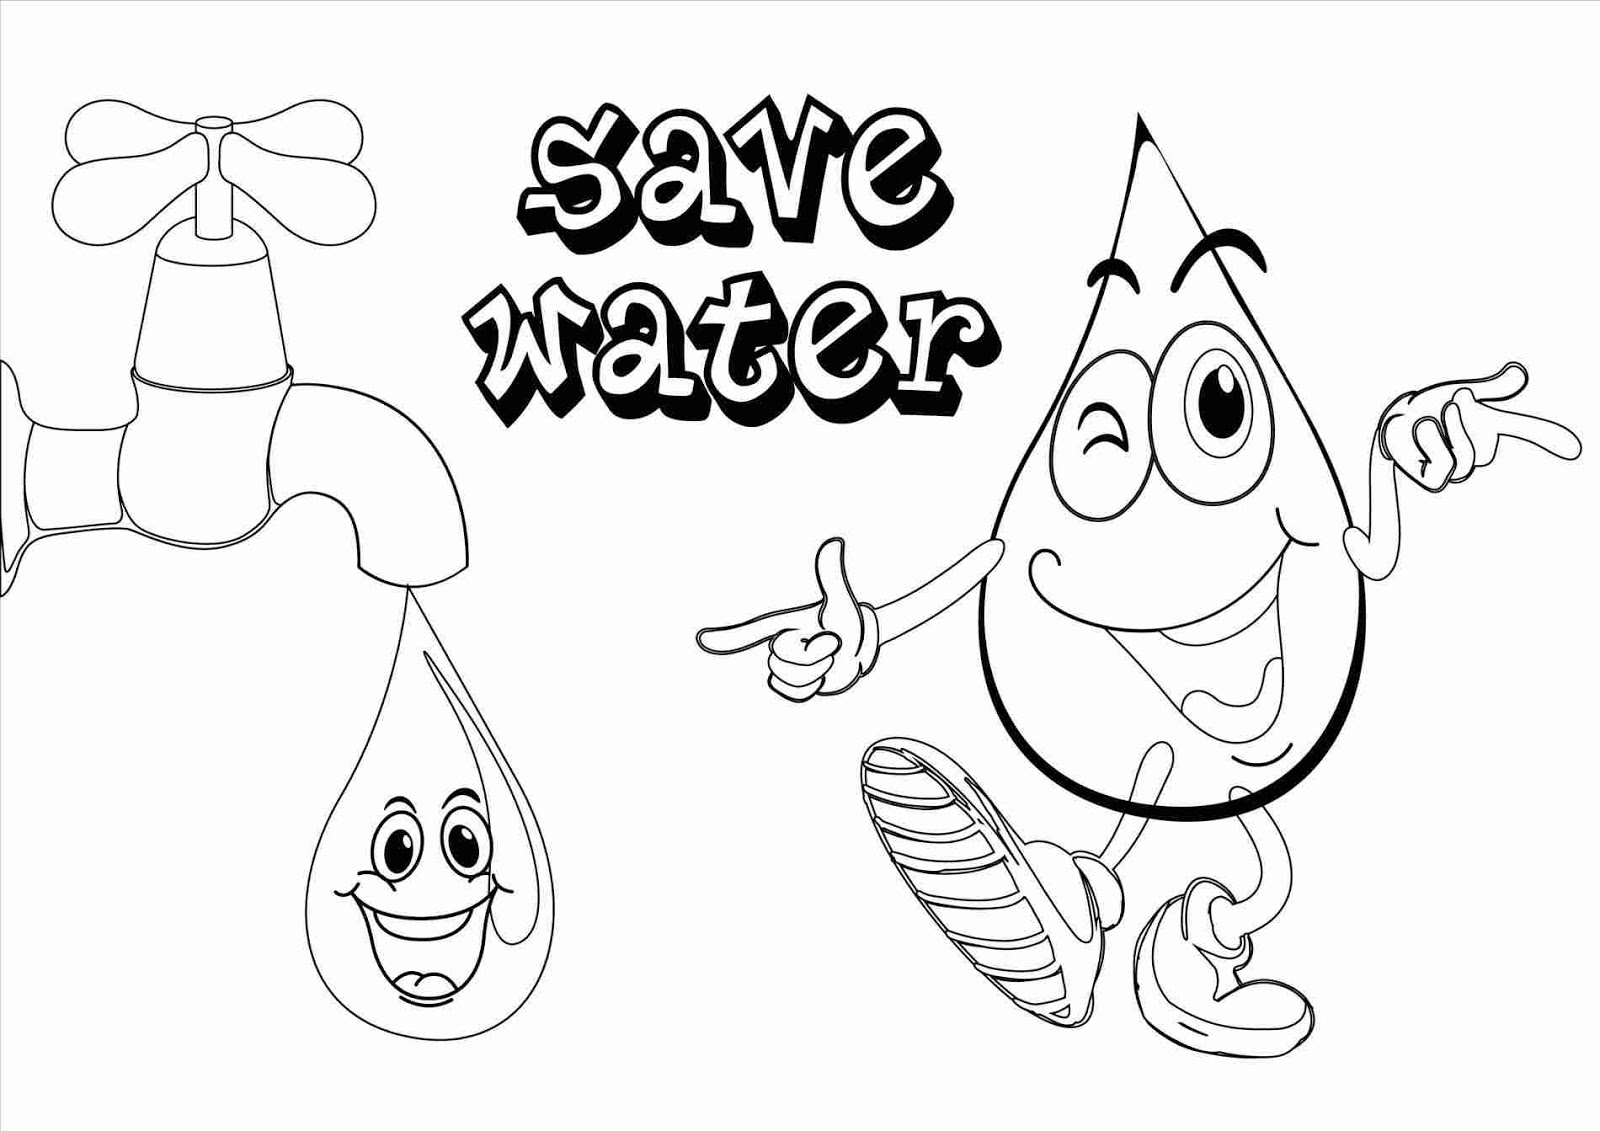 Save Water Poster For School Class 7 8 12 Images Sketch